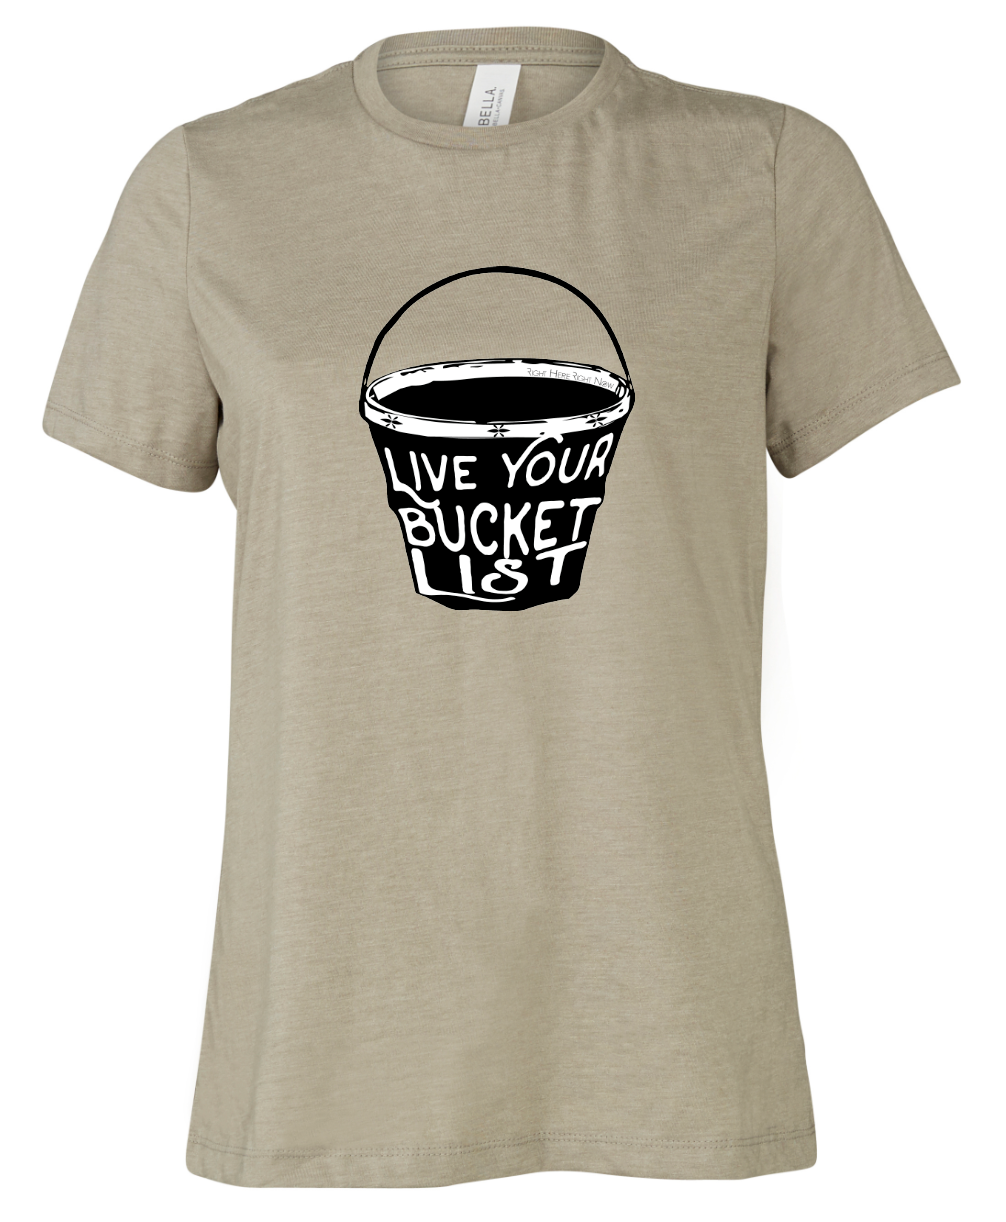 Live Your Bucket List - Relaxed Tee